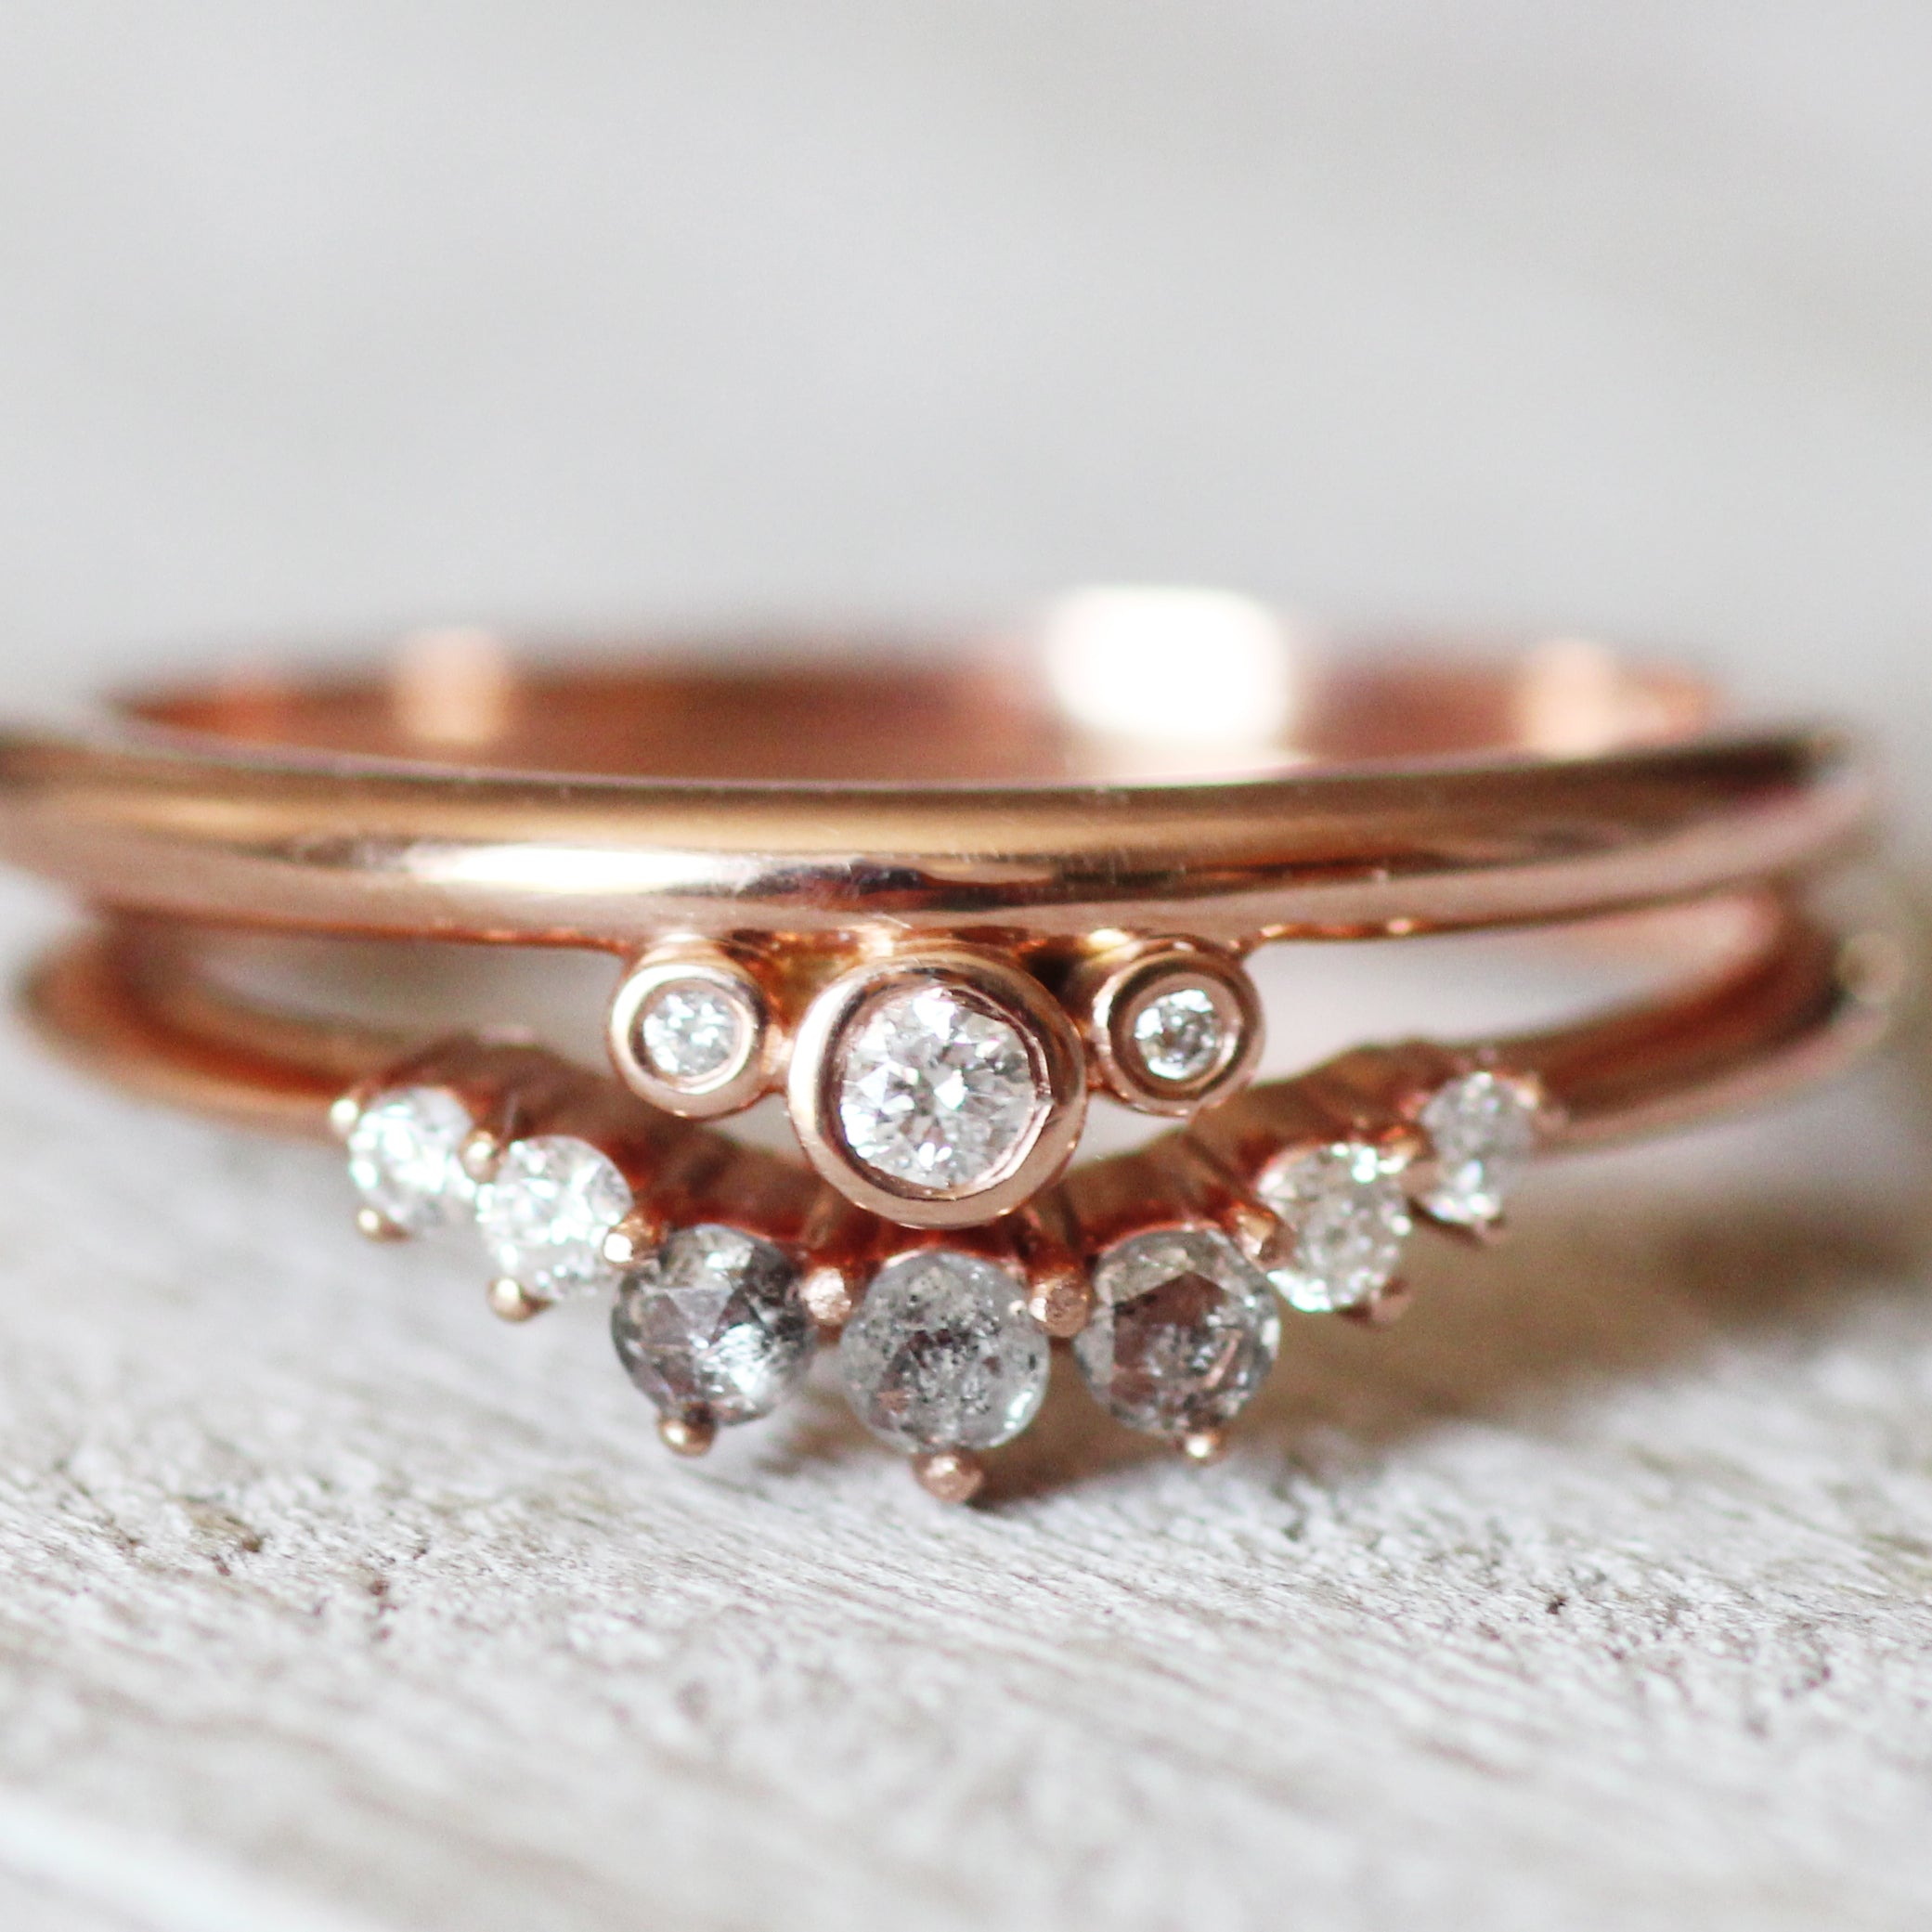 Trinity Ring with Bezel Set Diamonds in 10k Rose Gold - Ready to Size and Ship - Midwinter Co. Alternative Bridal Rings and Modern Fine Jewelry